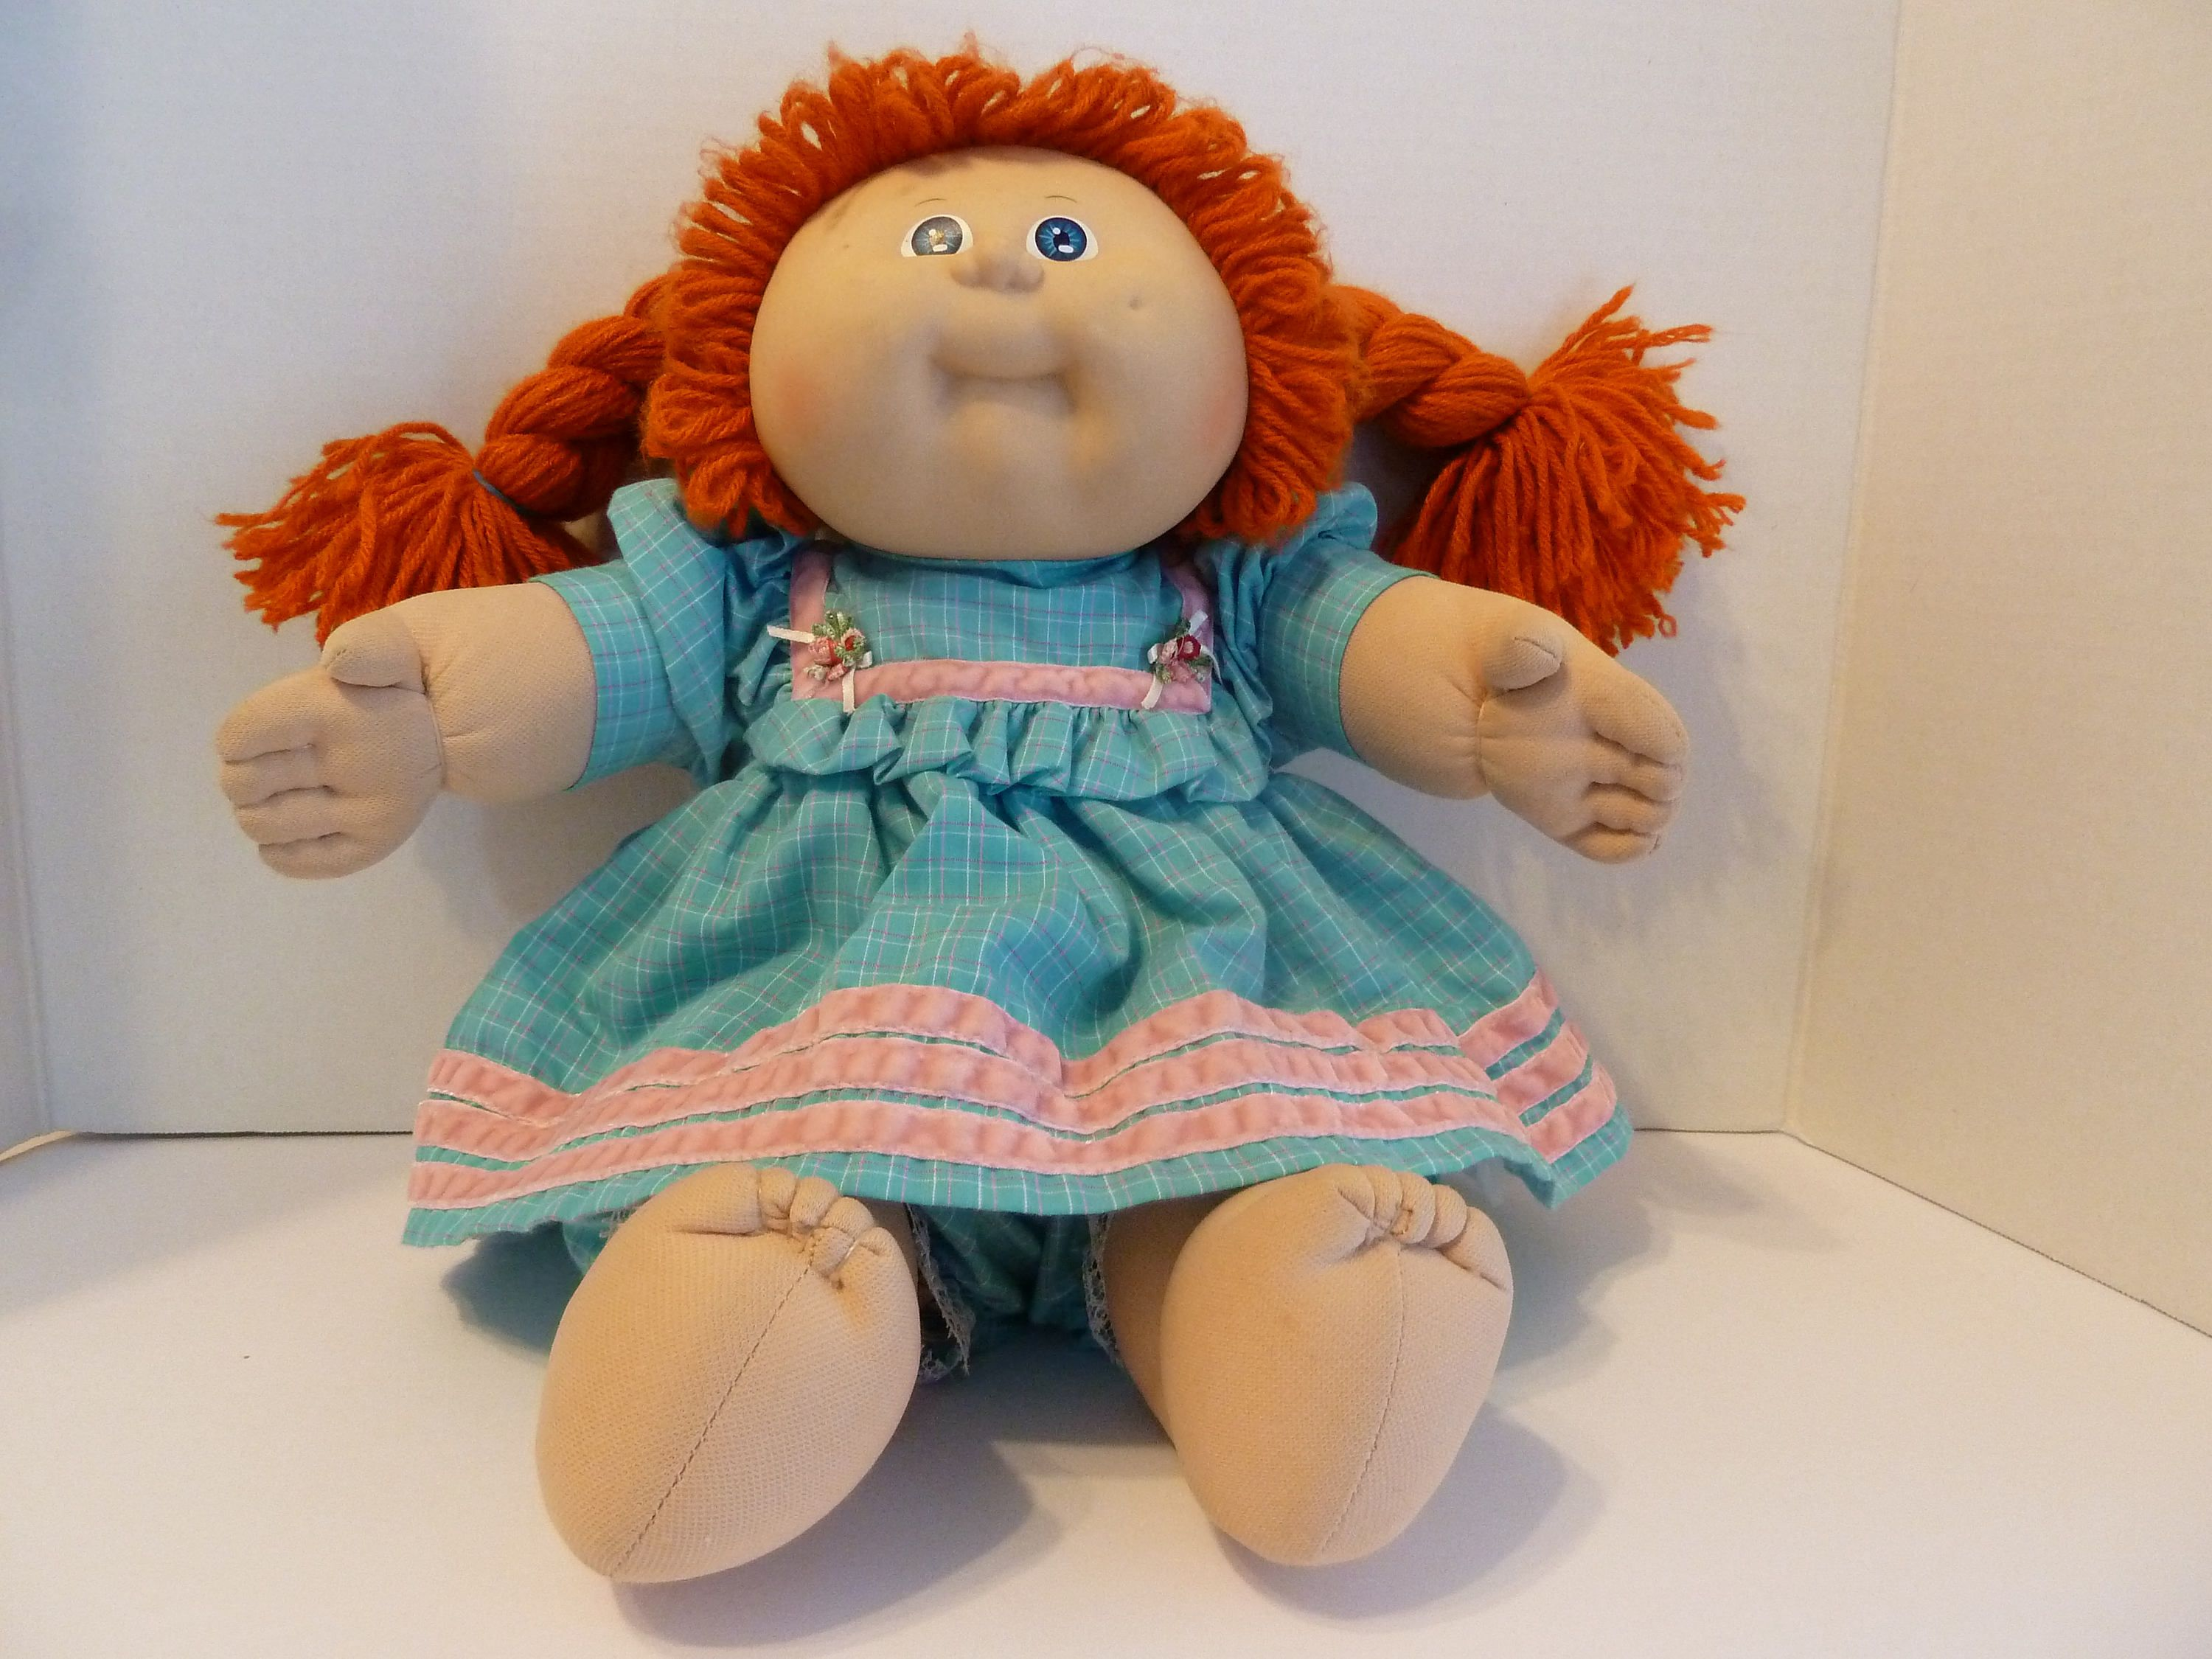 Cabbage Patch Girl Braided Red Hair Blue Eyes 1985 Circa Original Clothes Diaper By Bjsdodads On Etsy Girls With Red Hair Bright Blue Dresses Red Hair